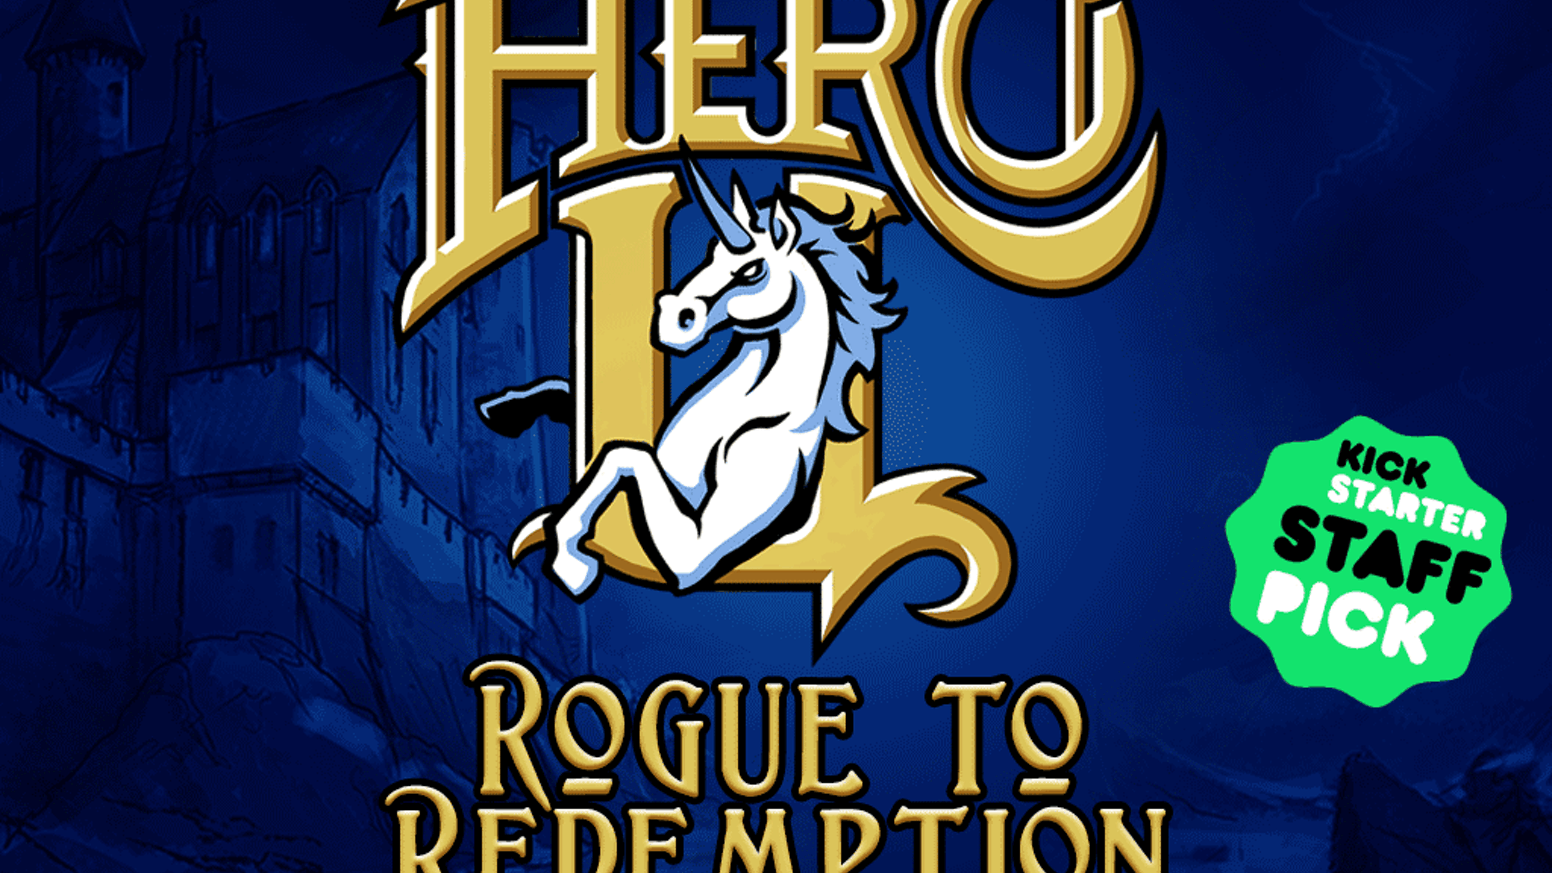 Hero-U: Rogue to Redemption is a Win/Mac/Linux adventure role-playing game by Lori and Corey Cole, Quest for Glory series creators.